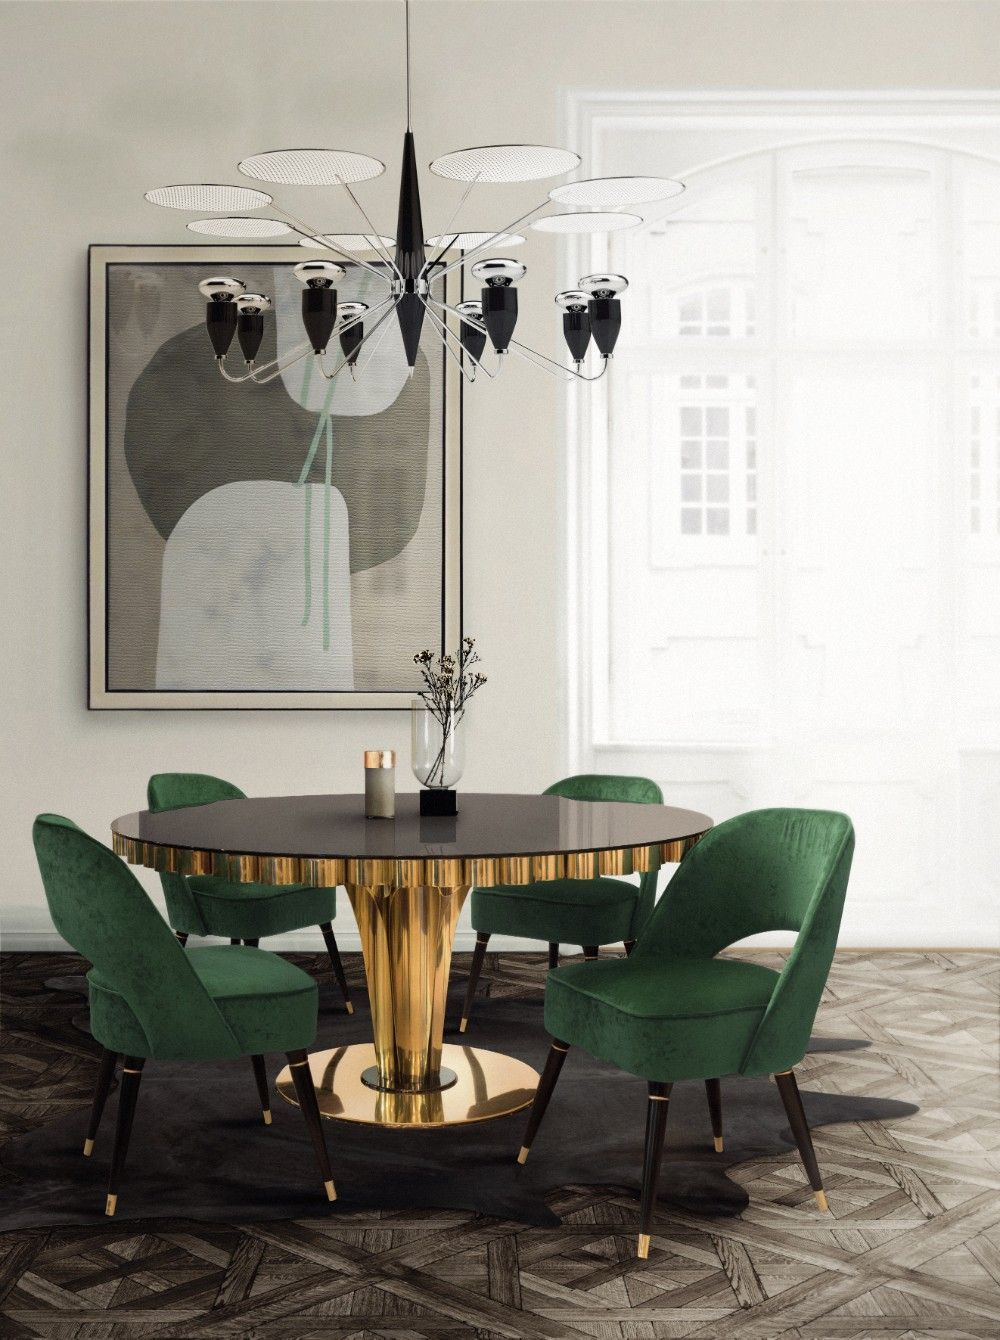 USA Contemporary Home Decor And Mid Century Modern Lighting Ideas From  DelightFULL   Http: